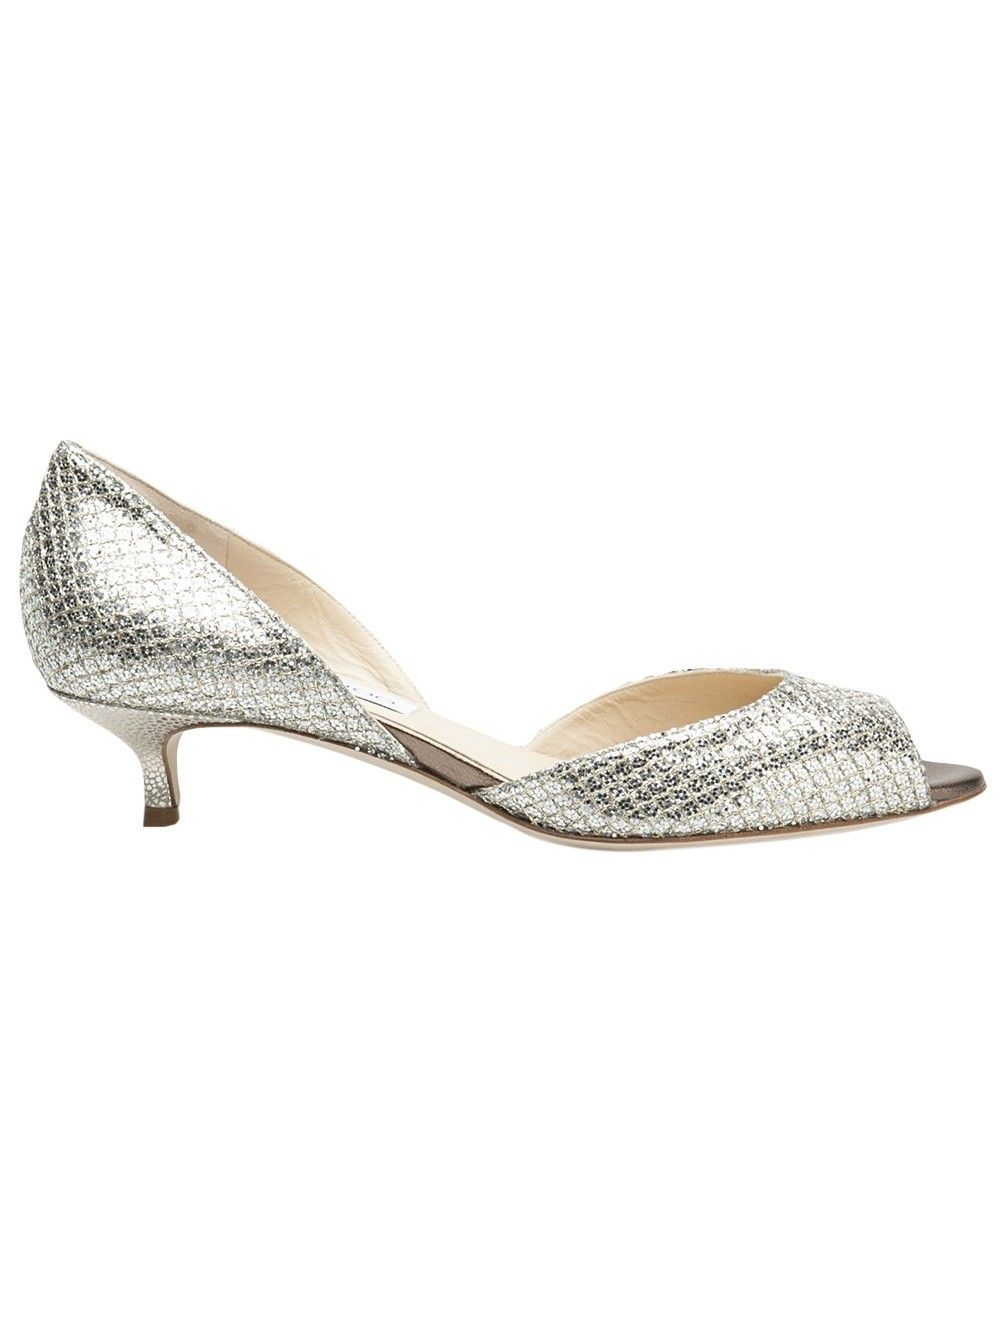 1000  images about wedding shoes on Pinterest | Glitter pumps ...